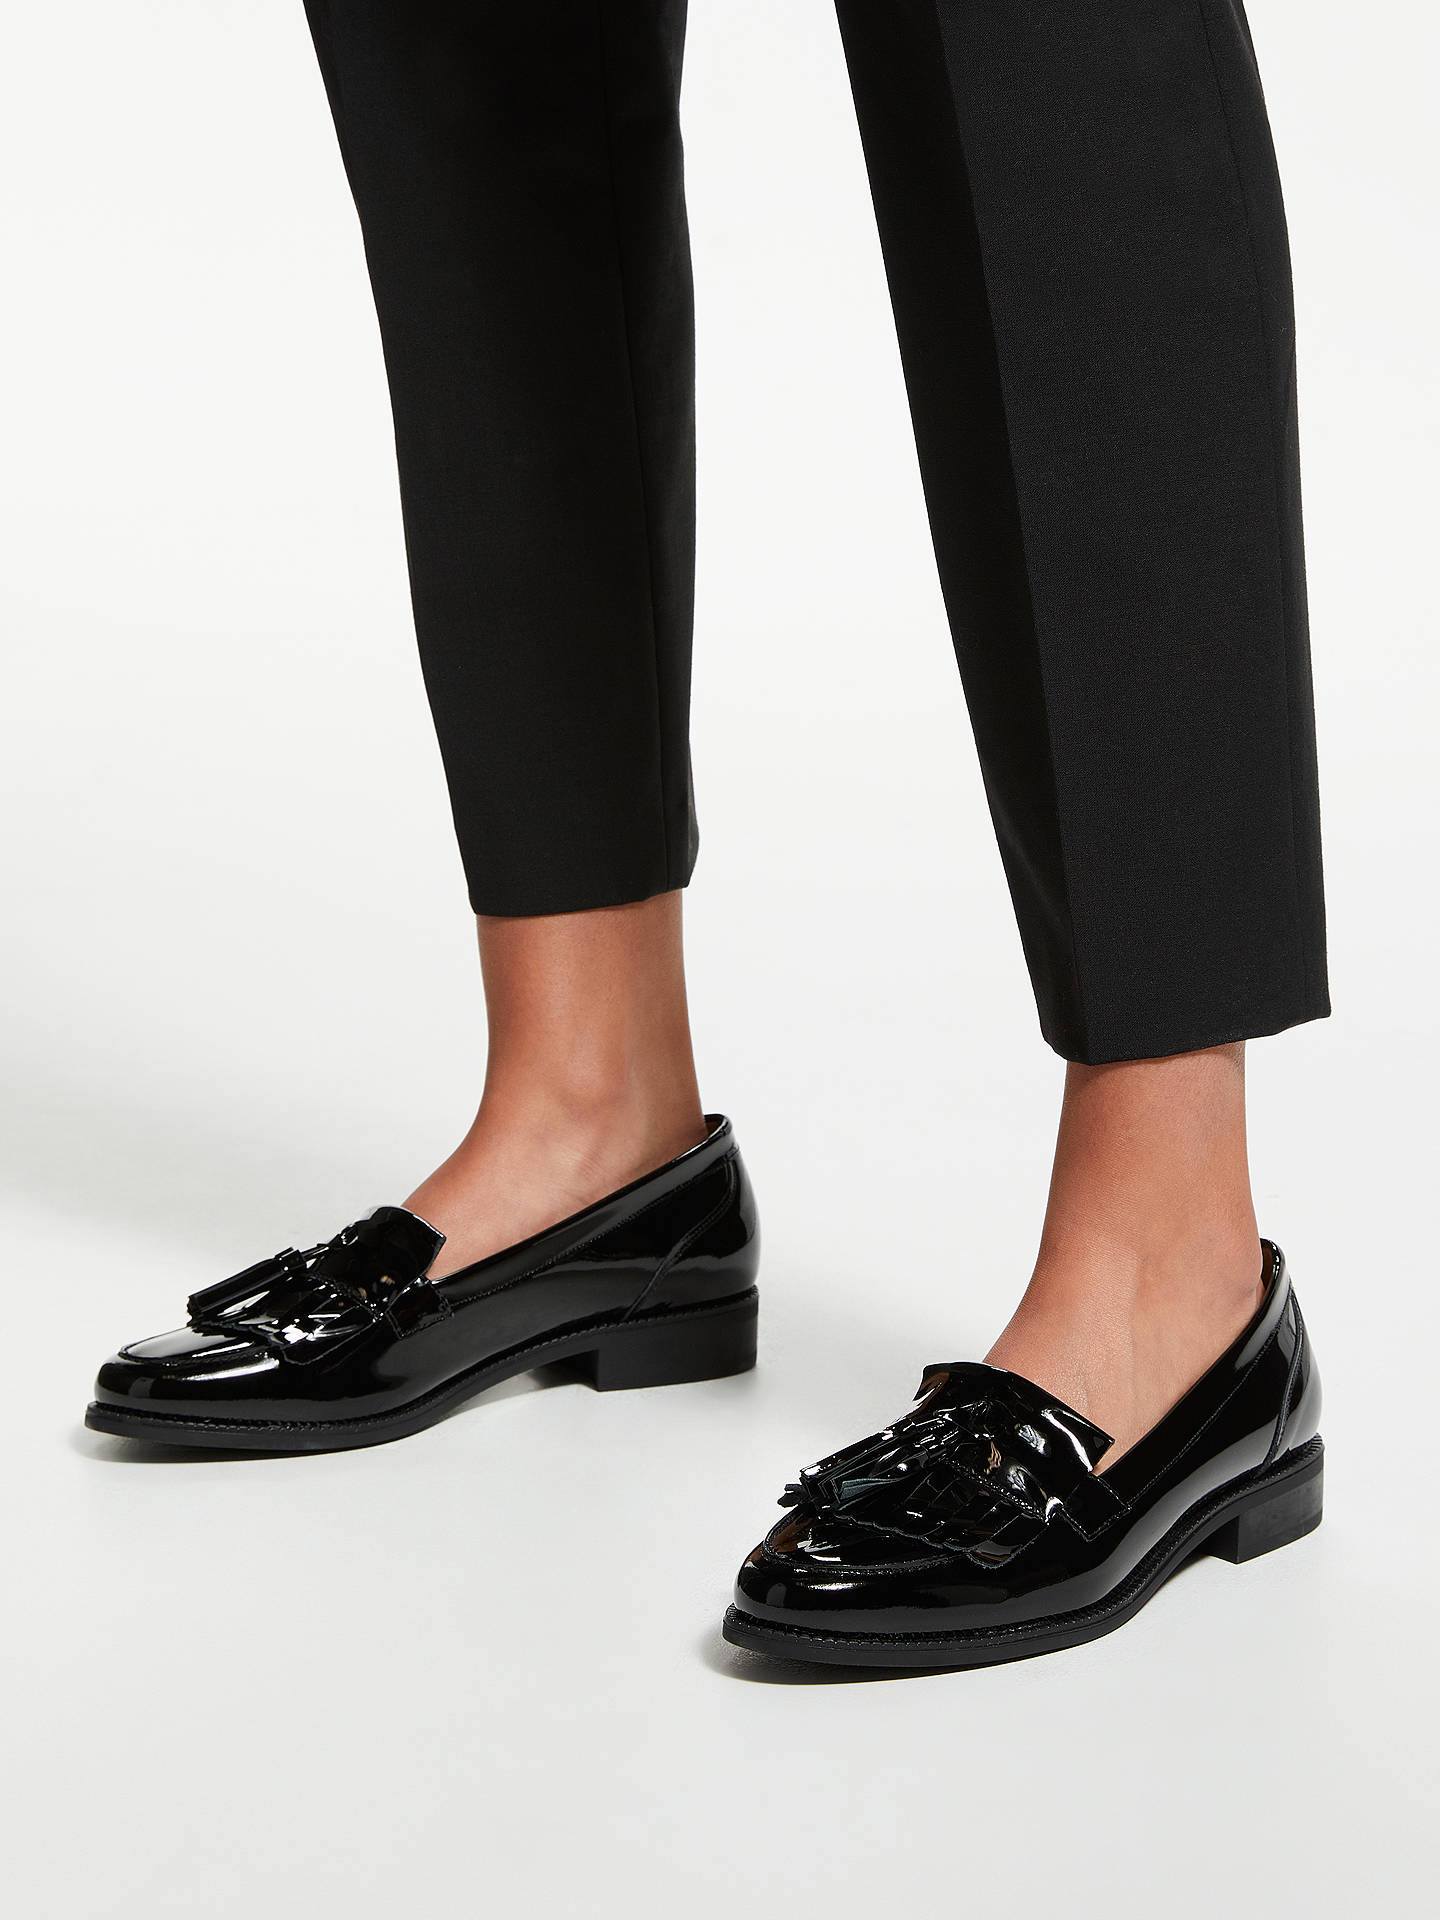 BuyJohn Lewis & Partners Gemma Loafers, Black Patent Leather, 3 Online at johnlewis.com